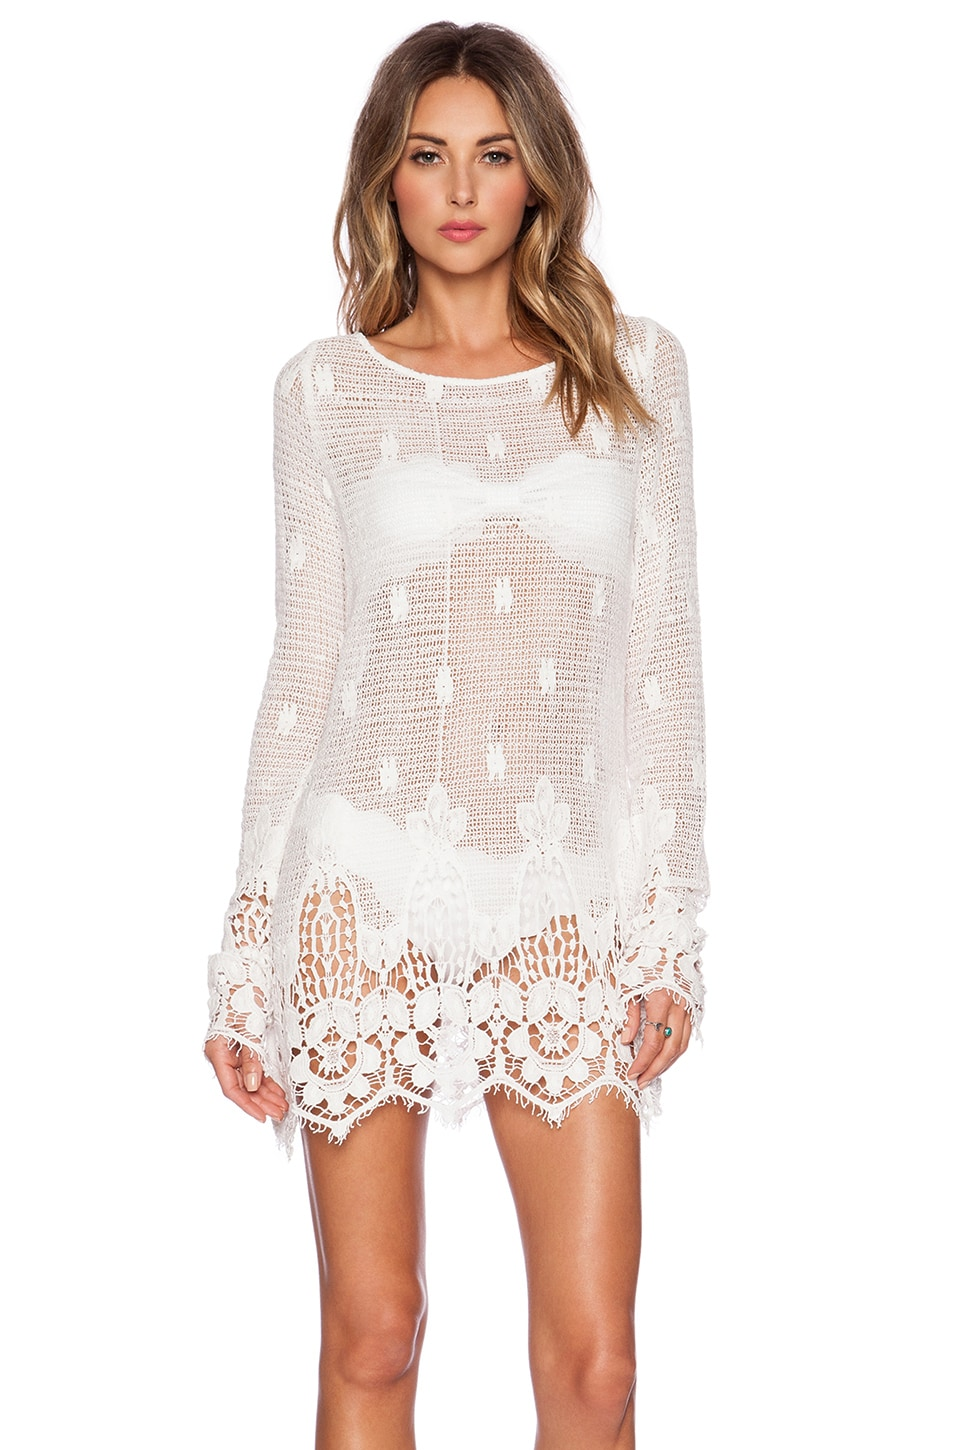 Tt Beach Beau Dress in White